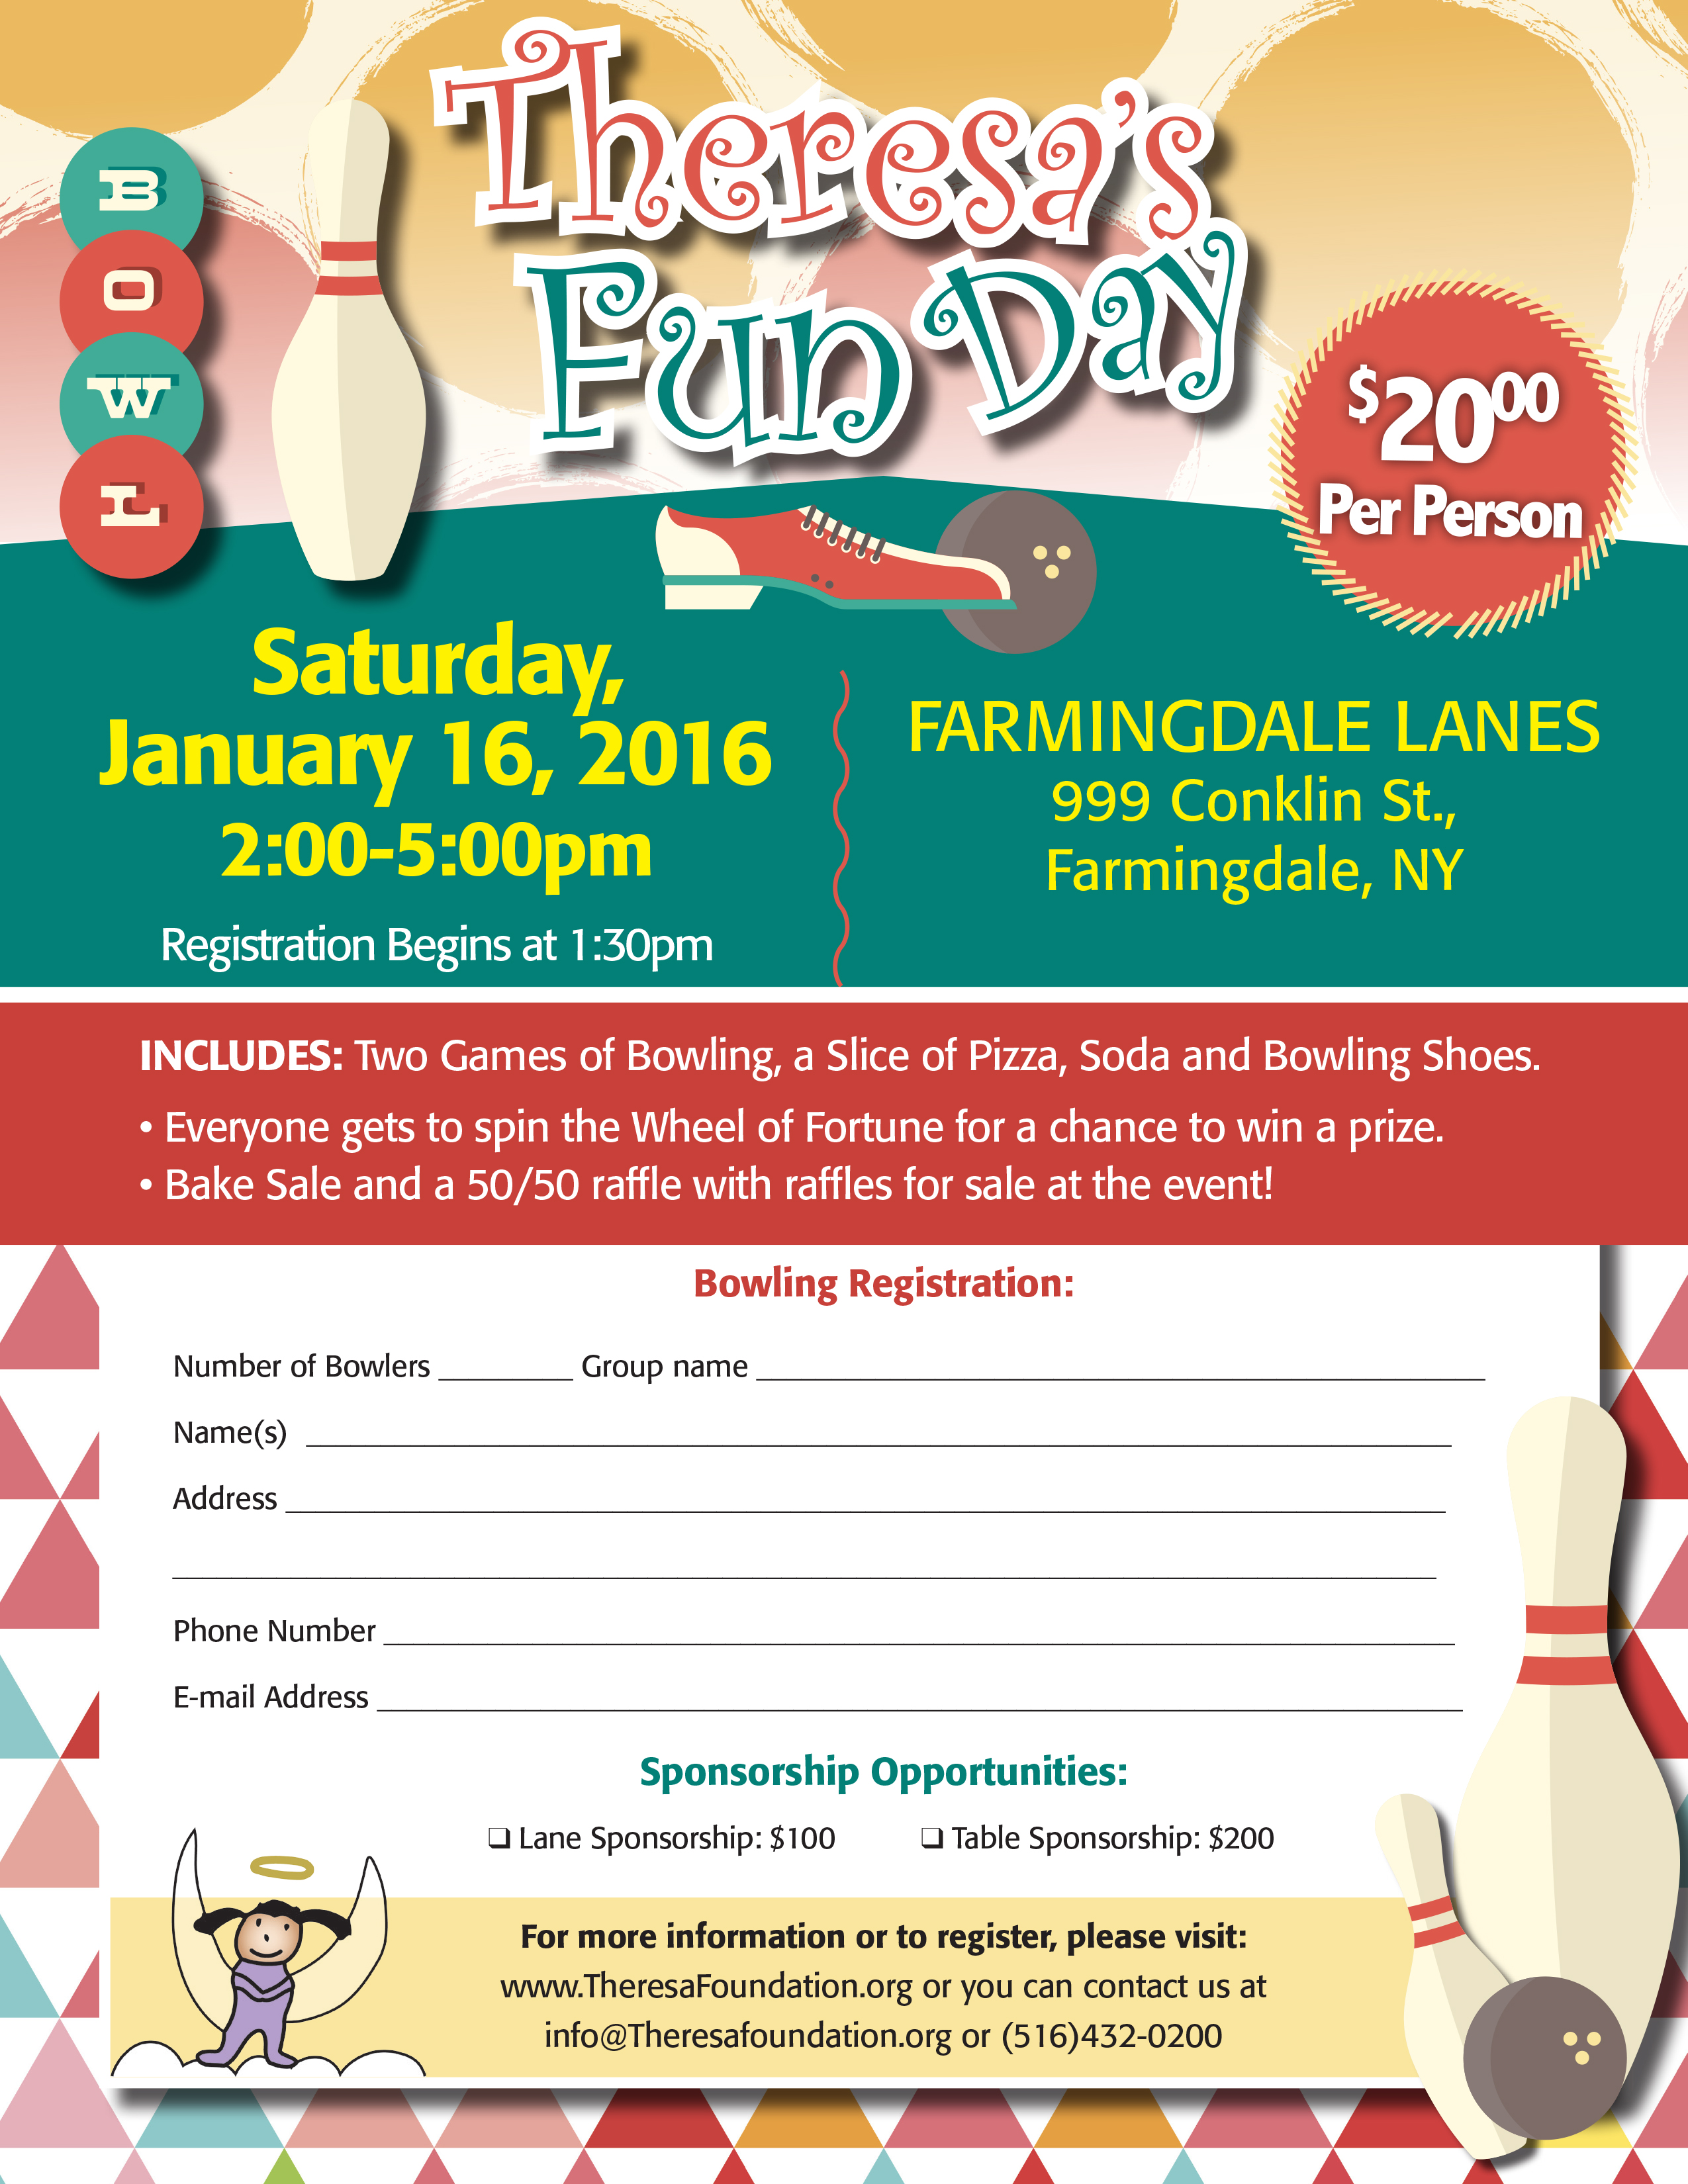 Theresa's Fun Day Bowling Fundraiser 2016